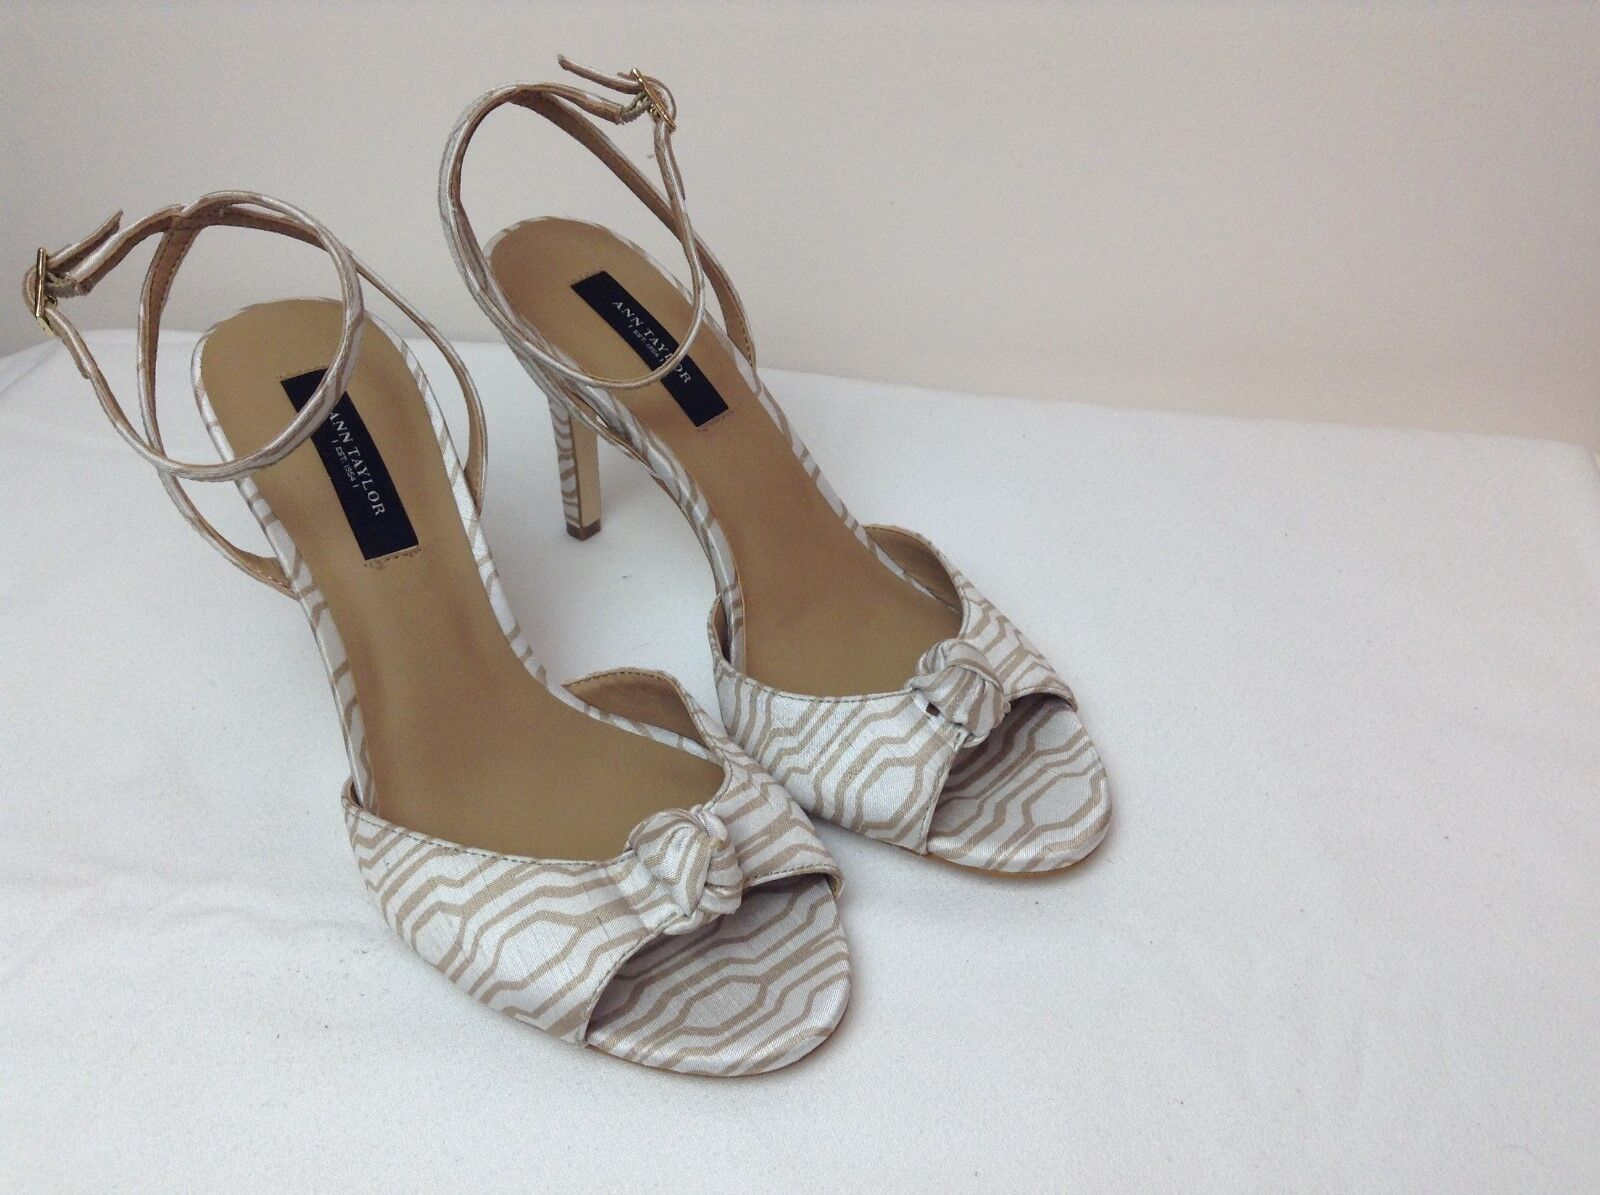 Ann Taylor Women's Size 7.5 Ankle B/M Knotted Peep Toe Ankle 7.5 Strap High Heels 4d93d0